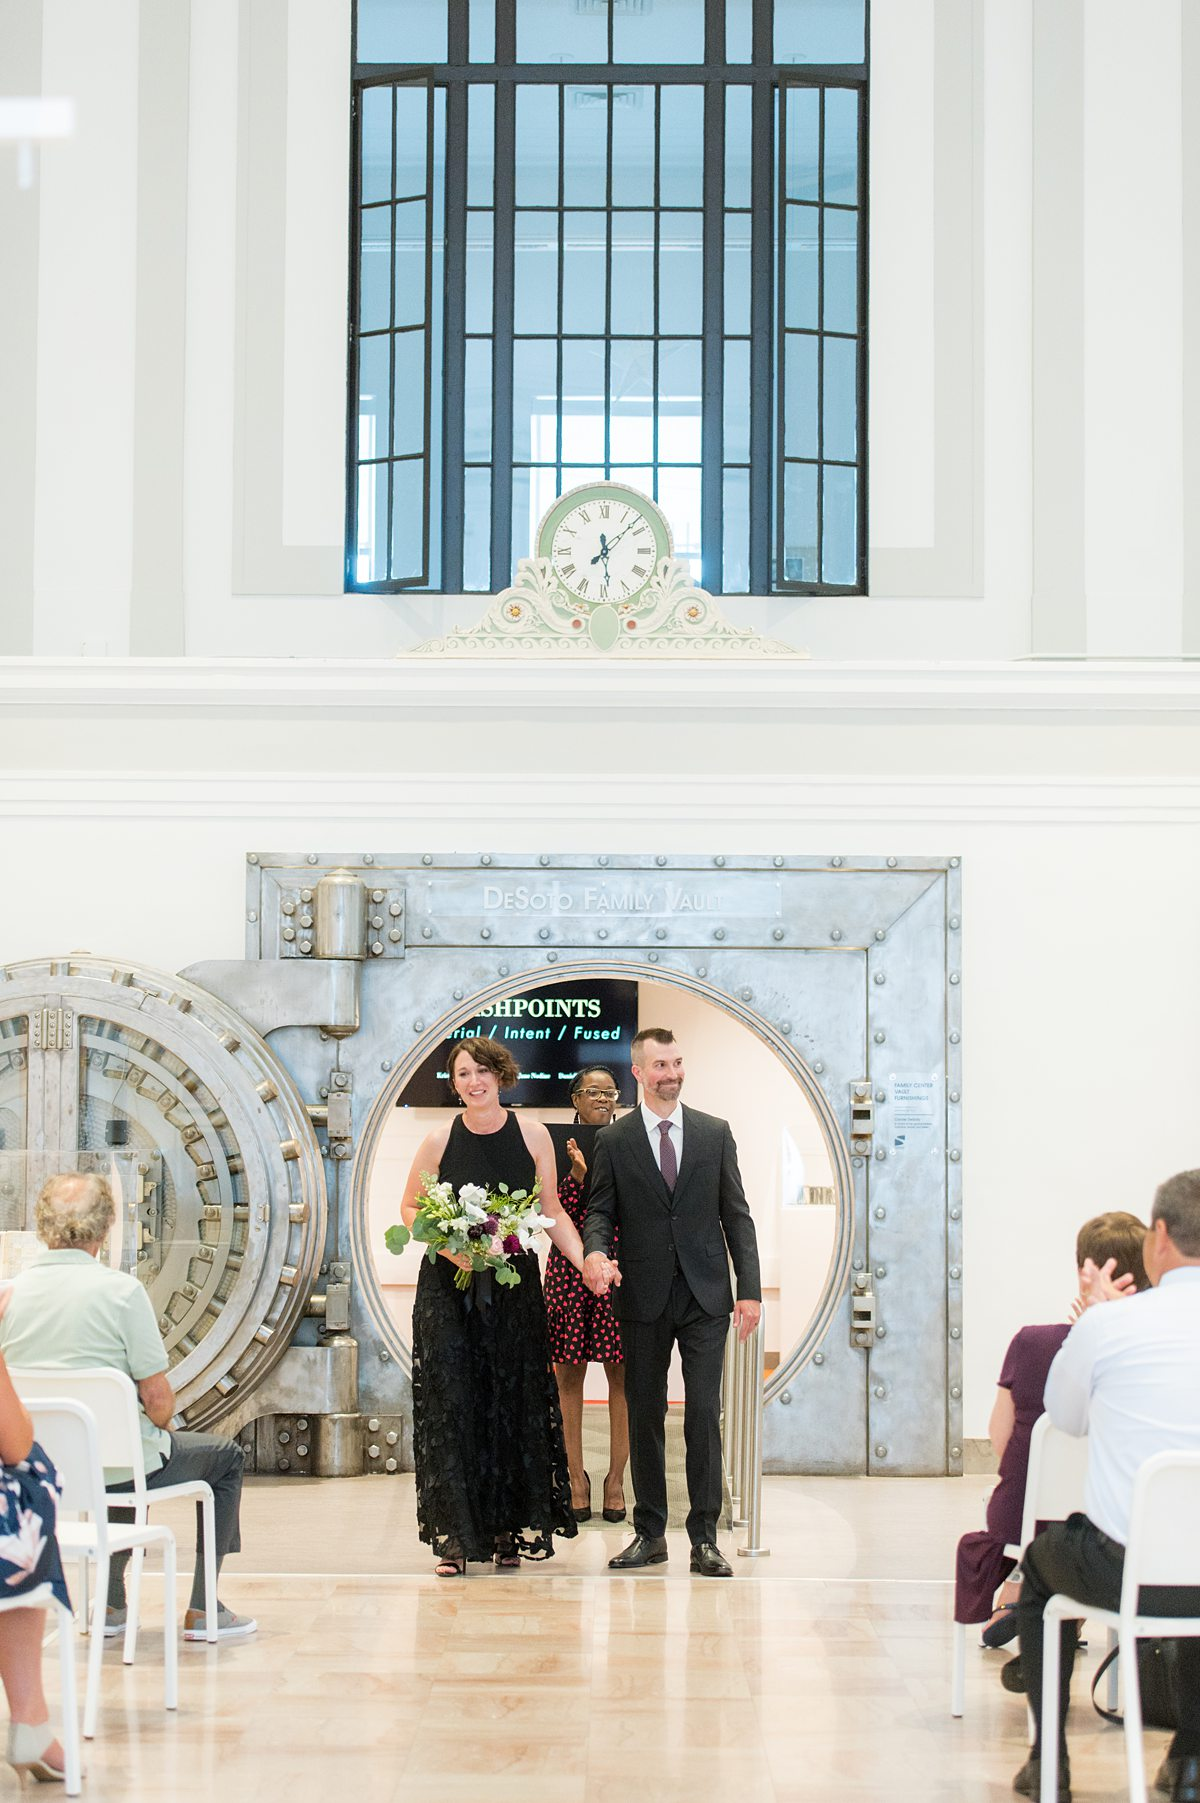 Wedding ceremony at an art museum, in front of an old safe.